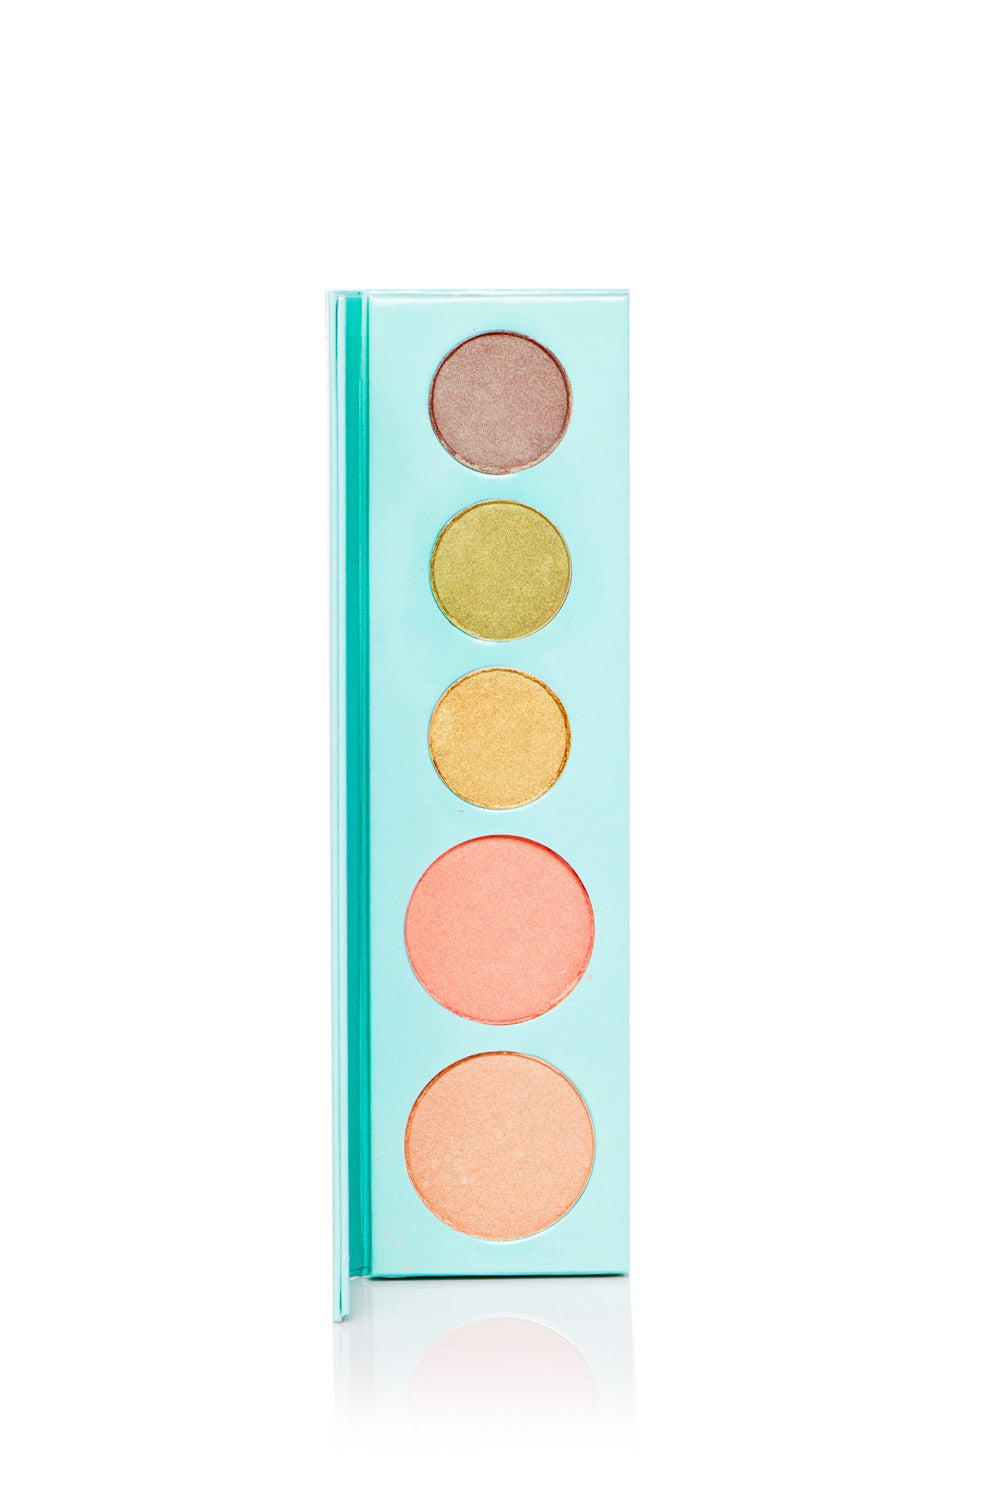 100% Pure Fruit Pigment Mermaid Palette